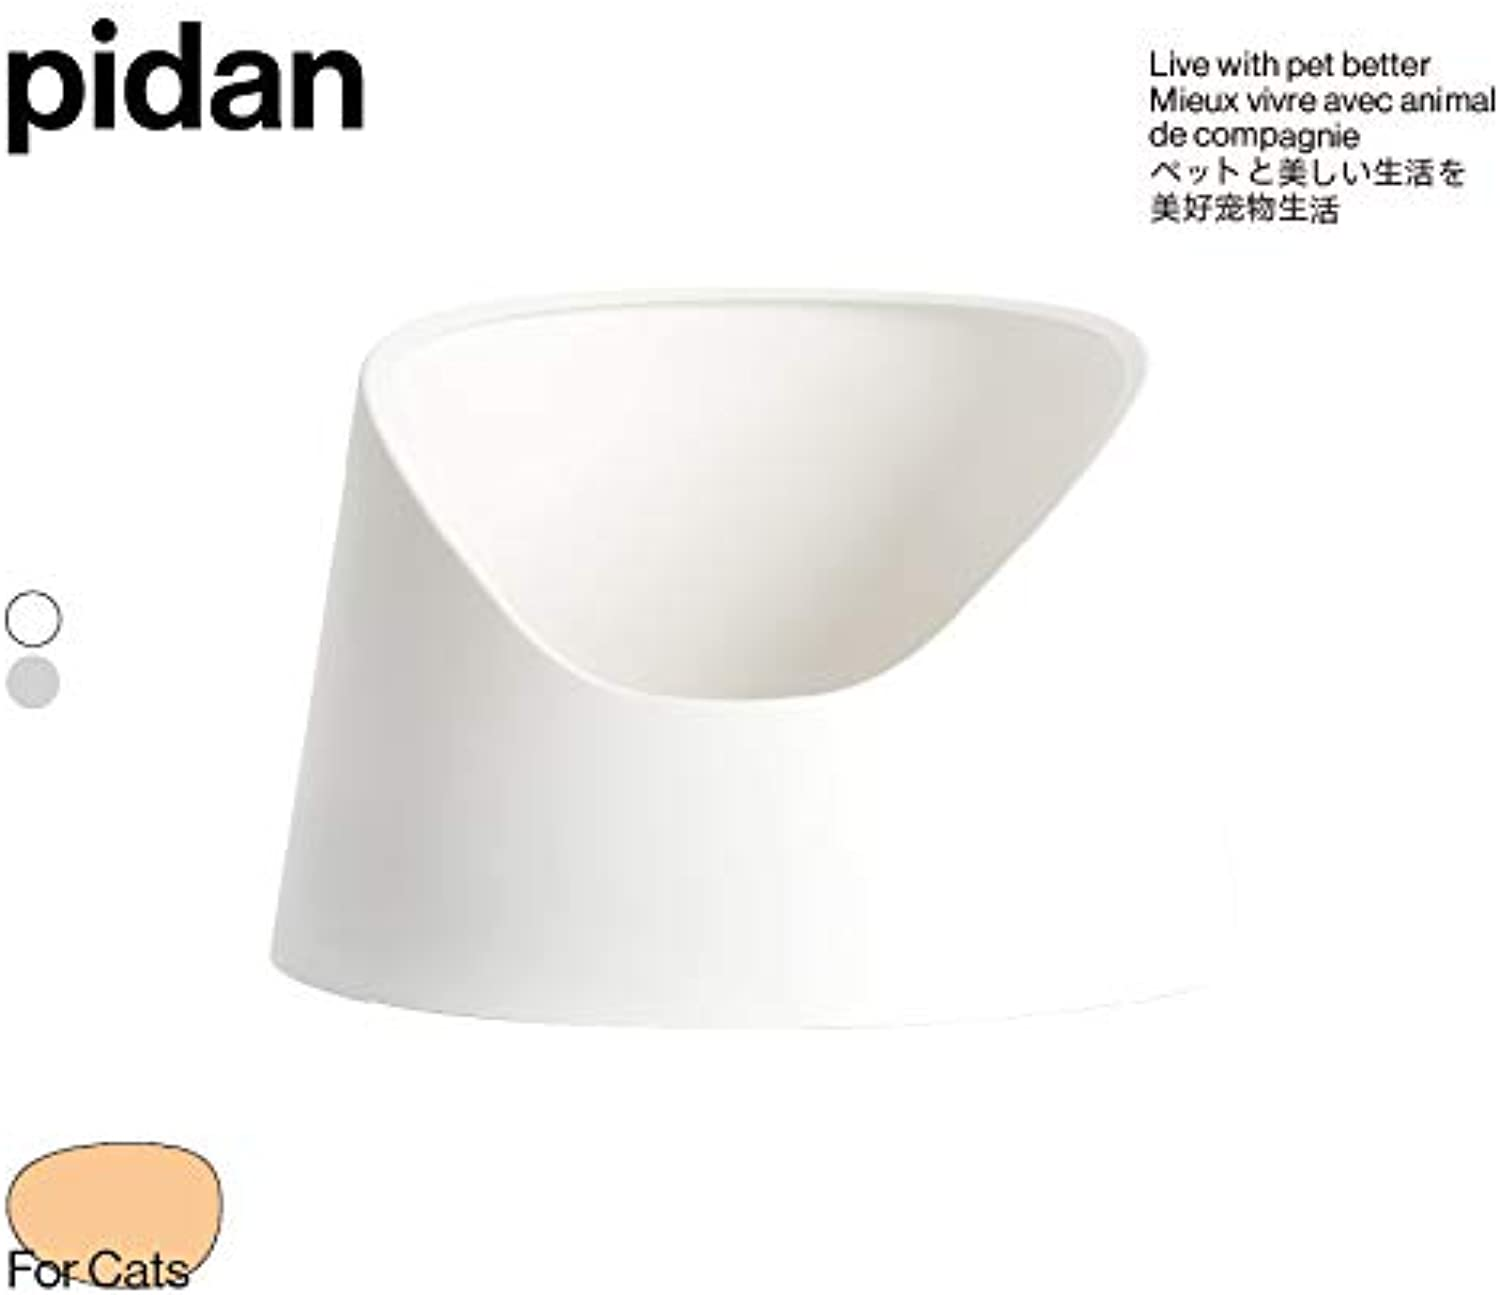 Pidan Cat Litter Box Large Litter Pan Cat Toilet Open Design Moderate Capacity Safe and Reliable Moderate Capacity Easy to Use (White)